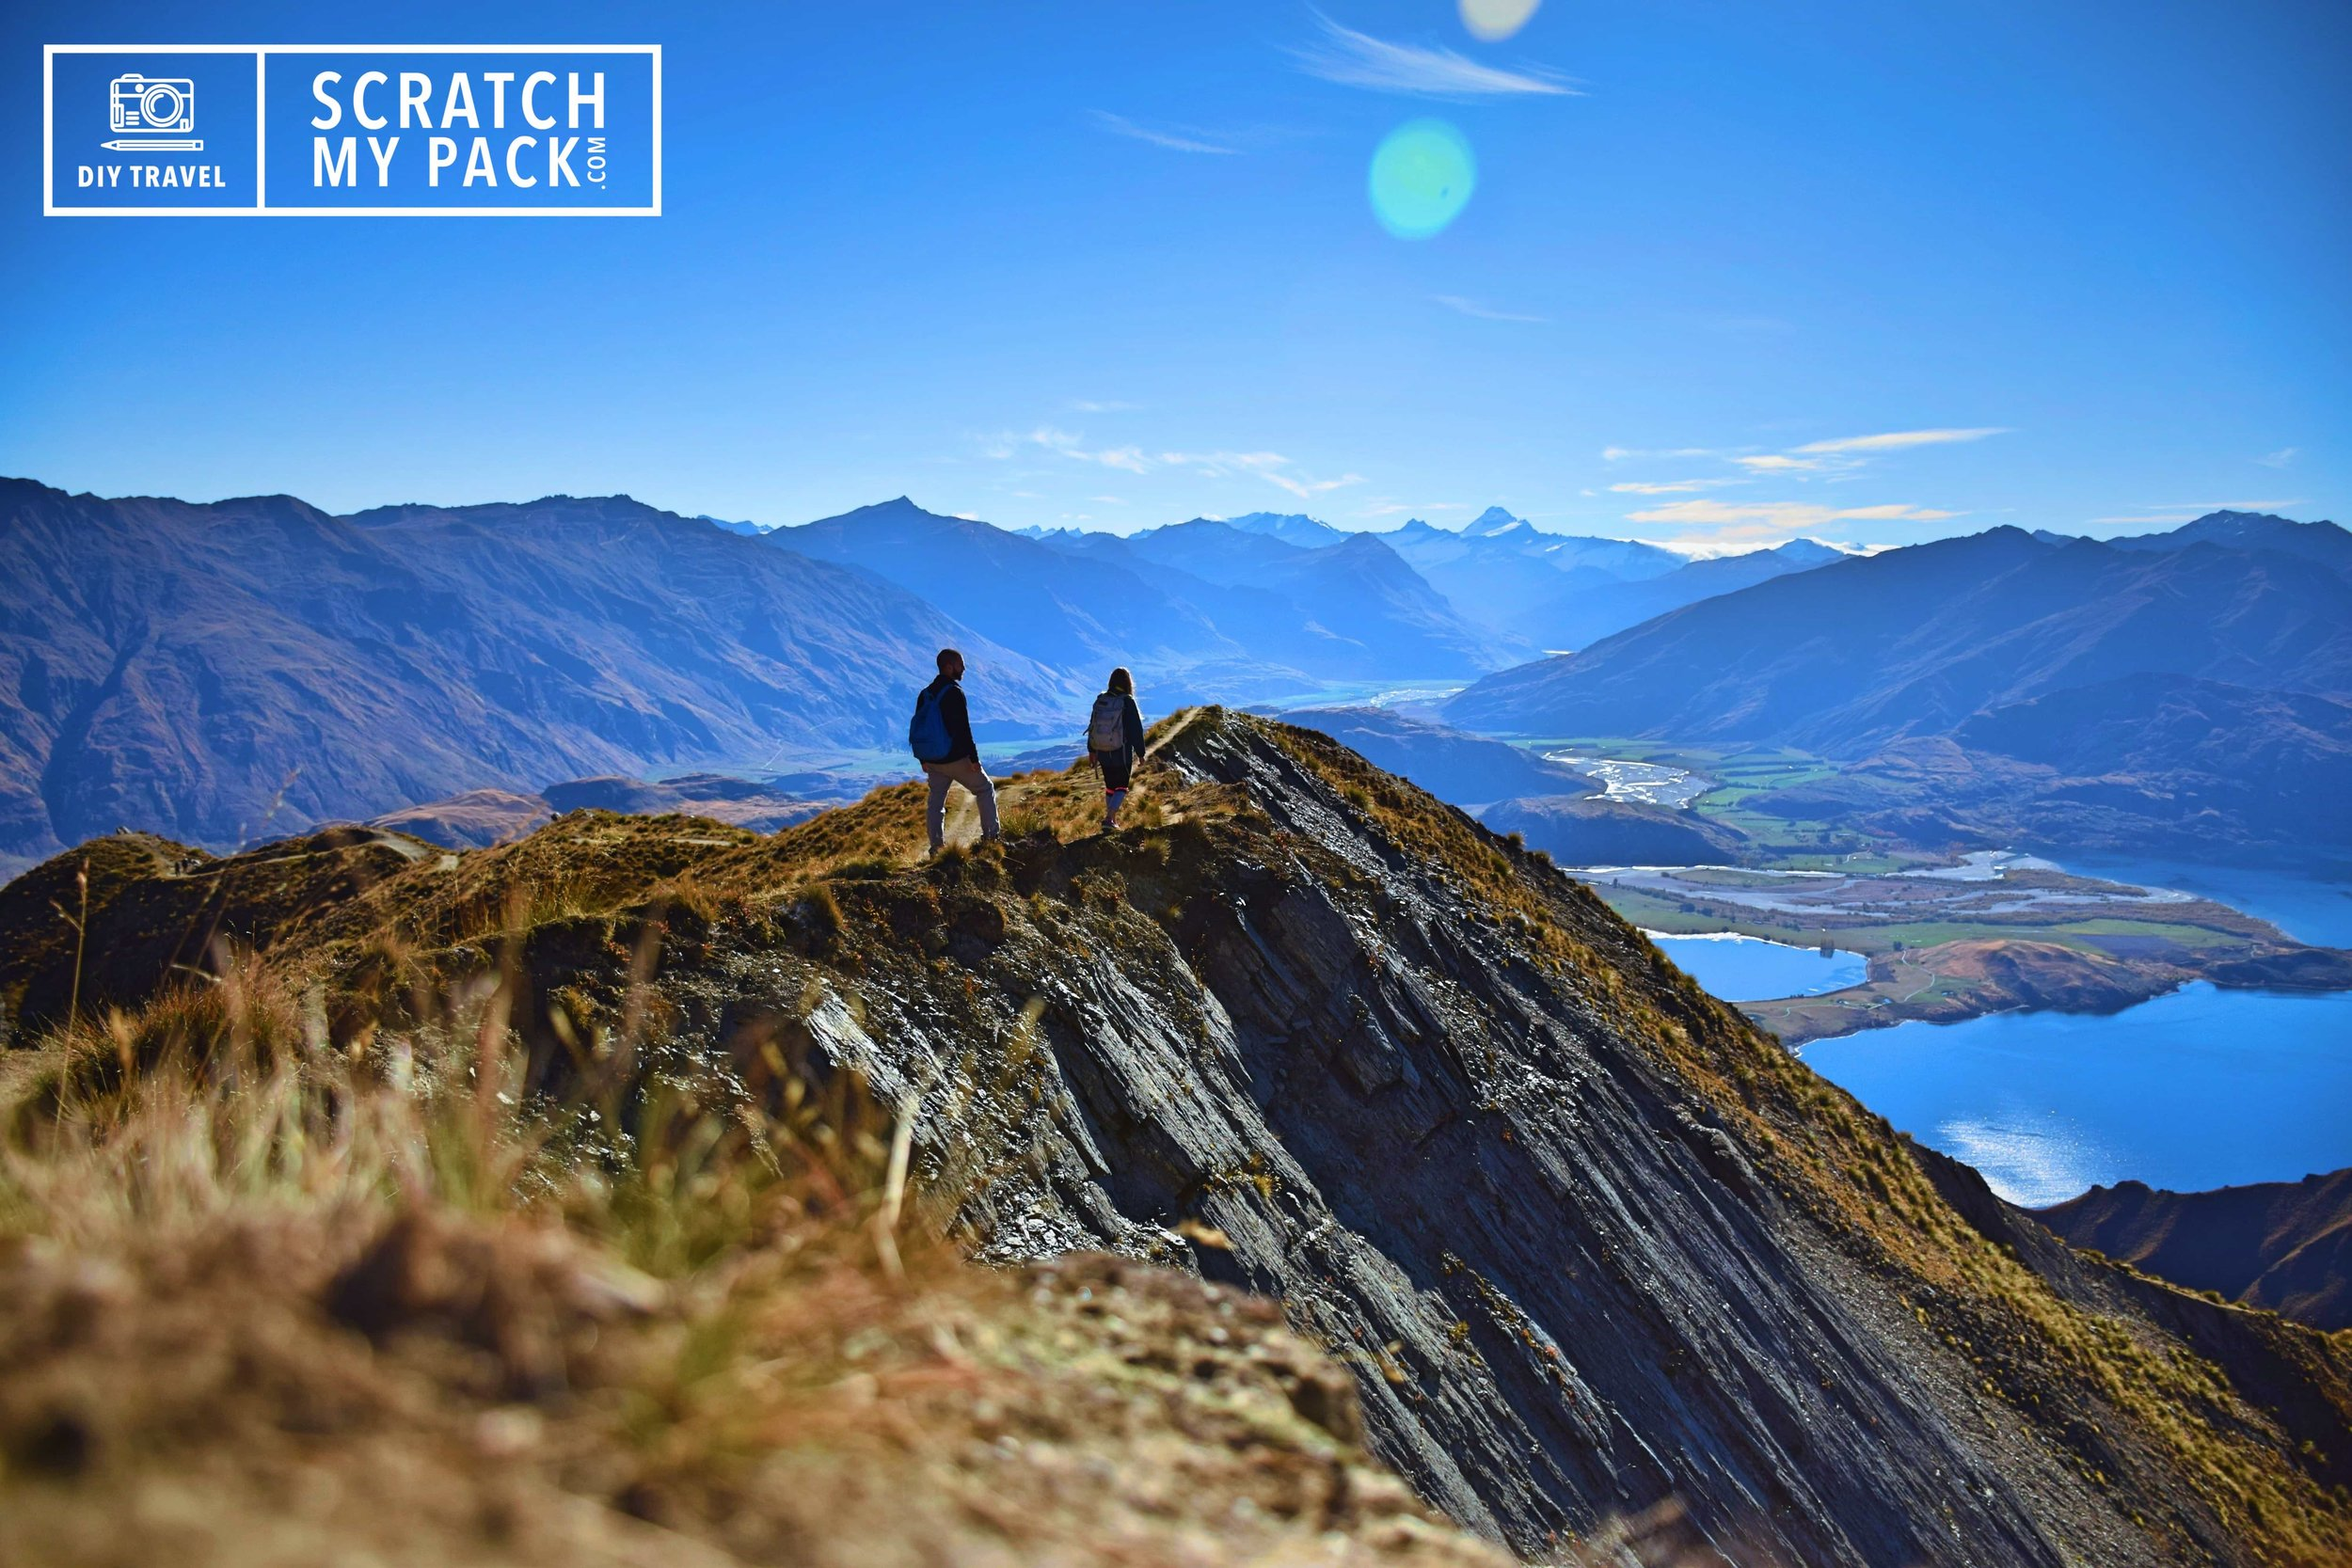 Hiking to the top of Roy's Peak in Wanaka,  New Zealand